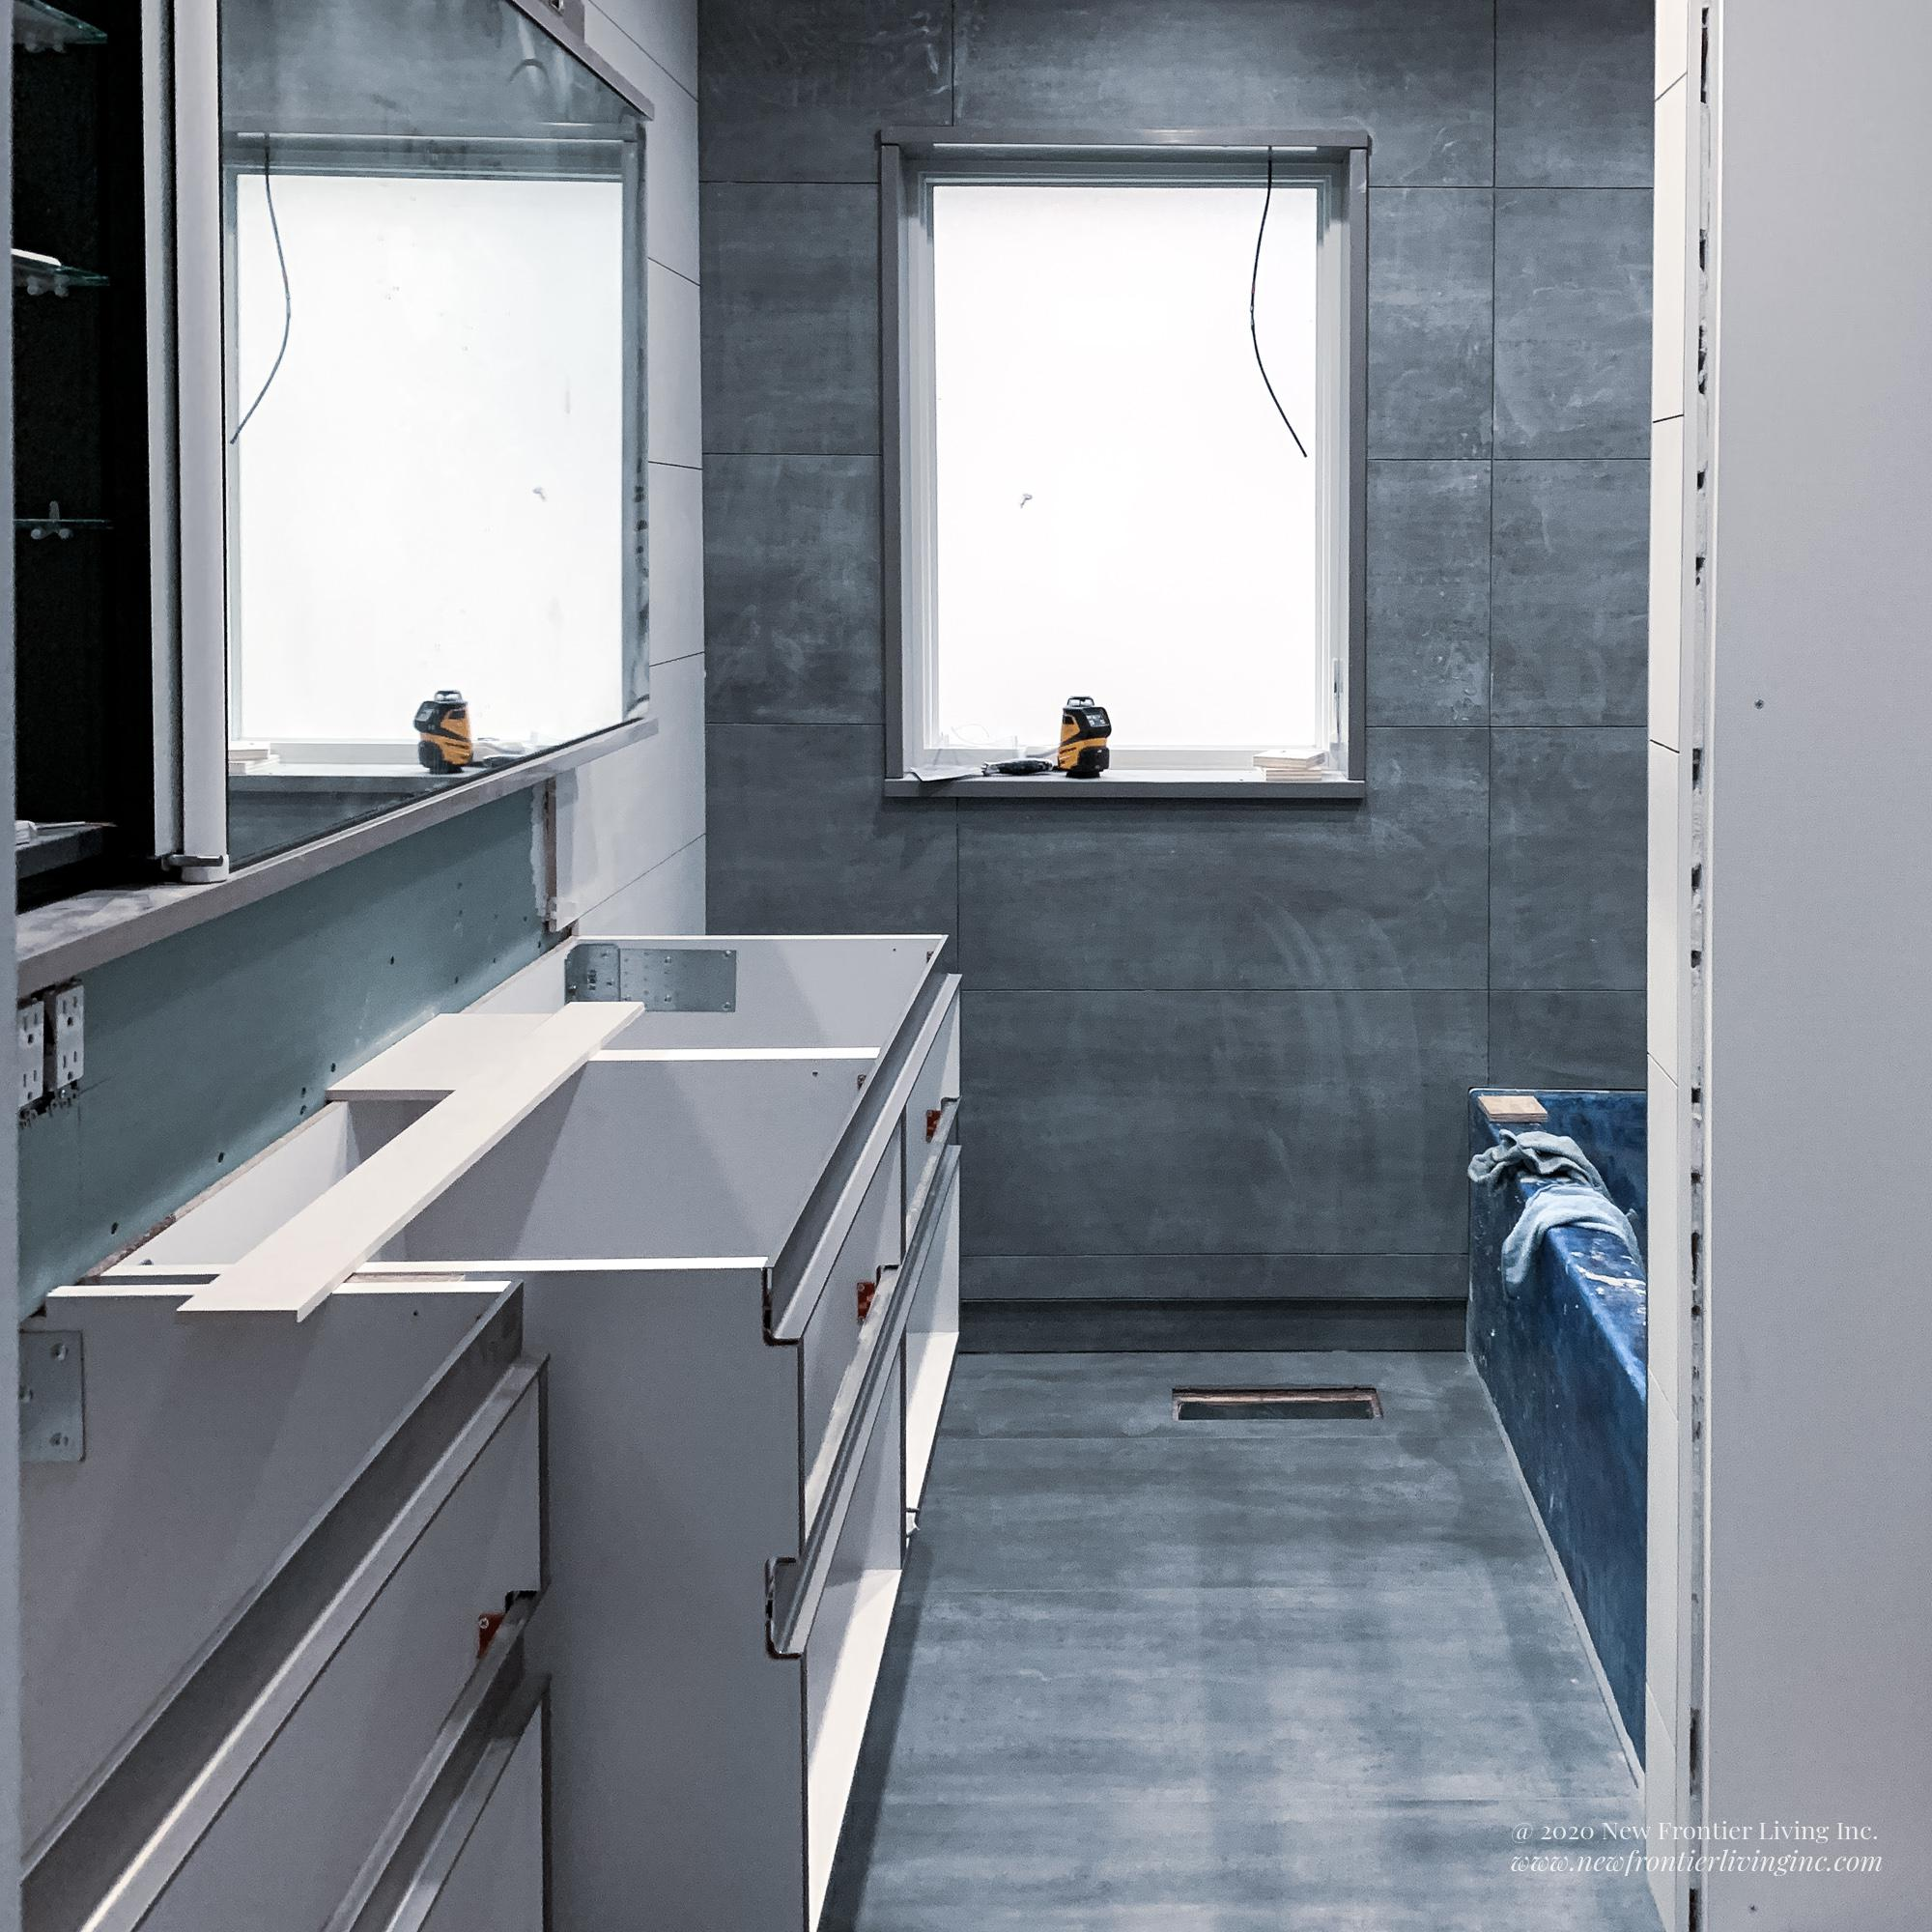 Bathroom during remodeling, bare cabinetry boxes and tiles, blue protection on the tub